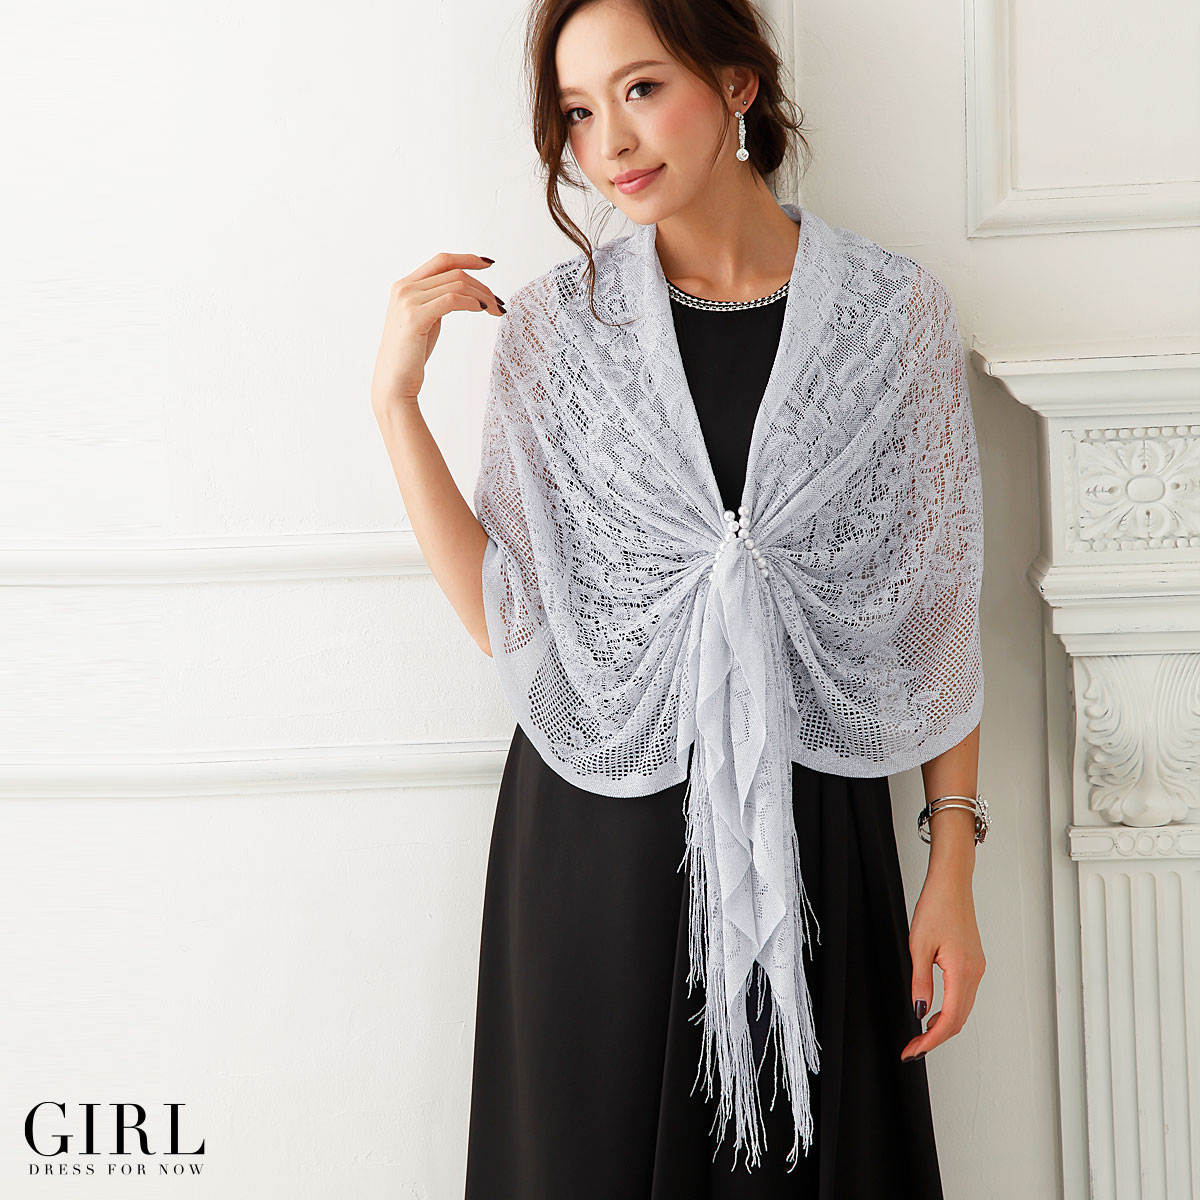 Dress shop GIRL | Rakuten Global Market: Shawls stoles wedding ...